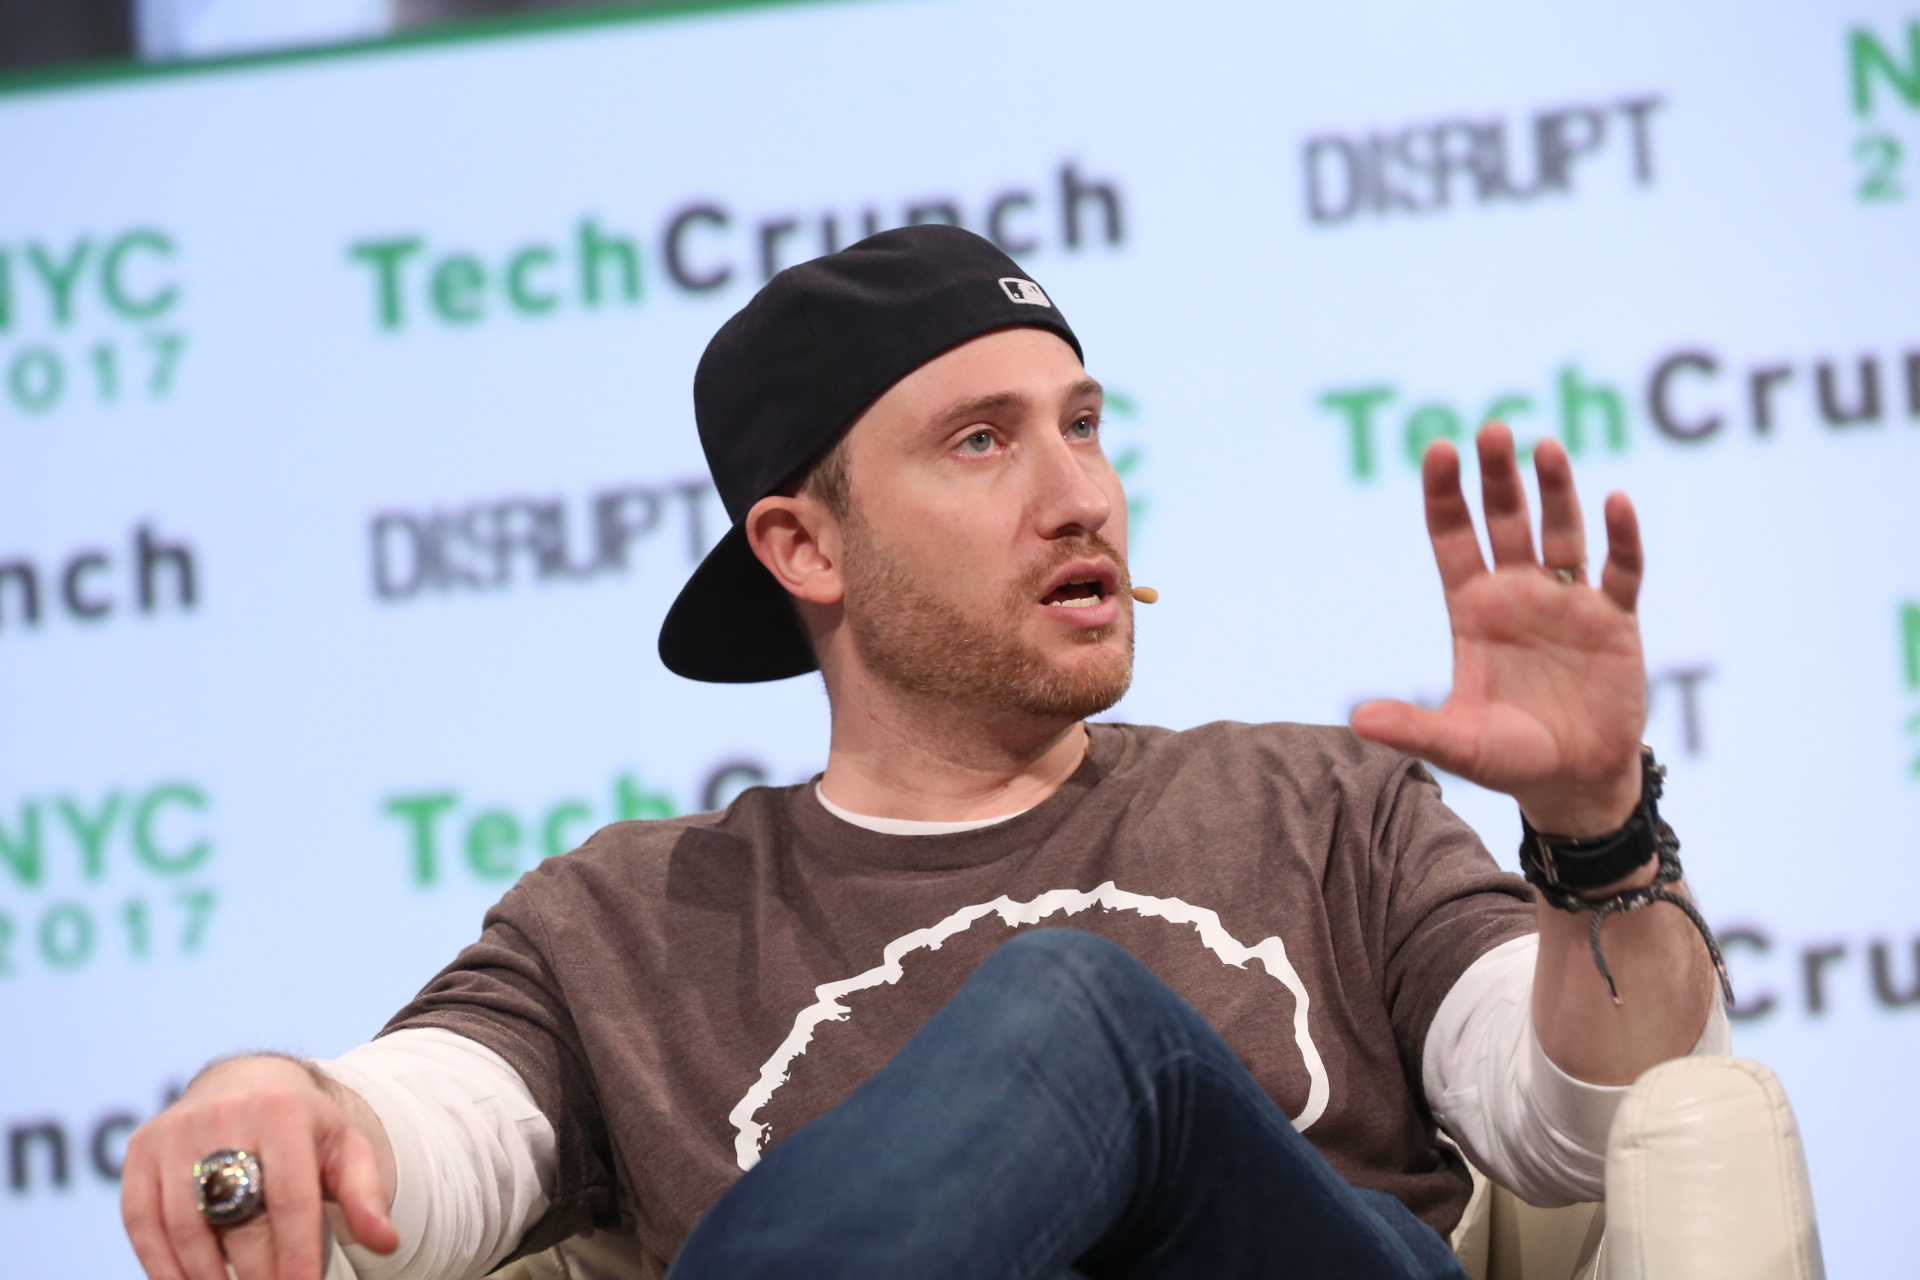 d6f93bc2 Detroit's StockX raises $44M from GV and Battery to expand marketplace  internationally | TechCrunch